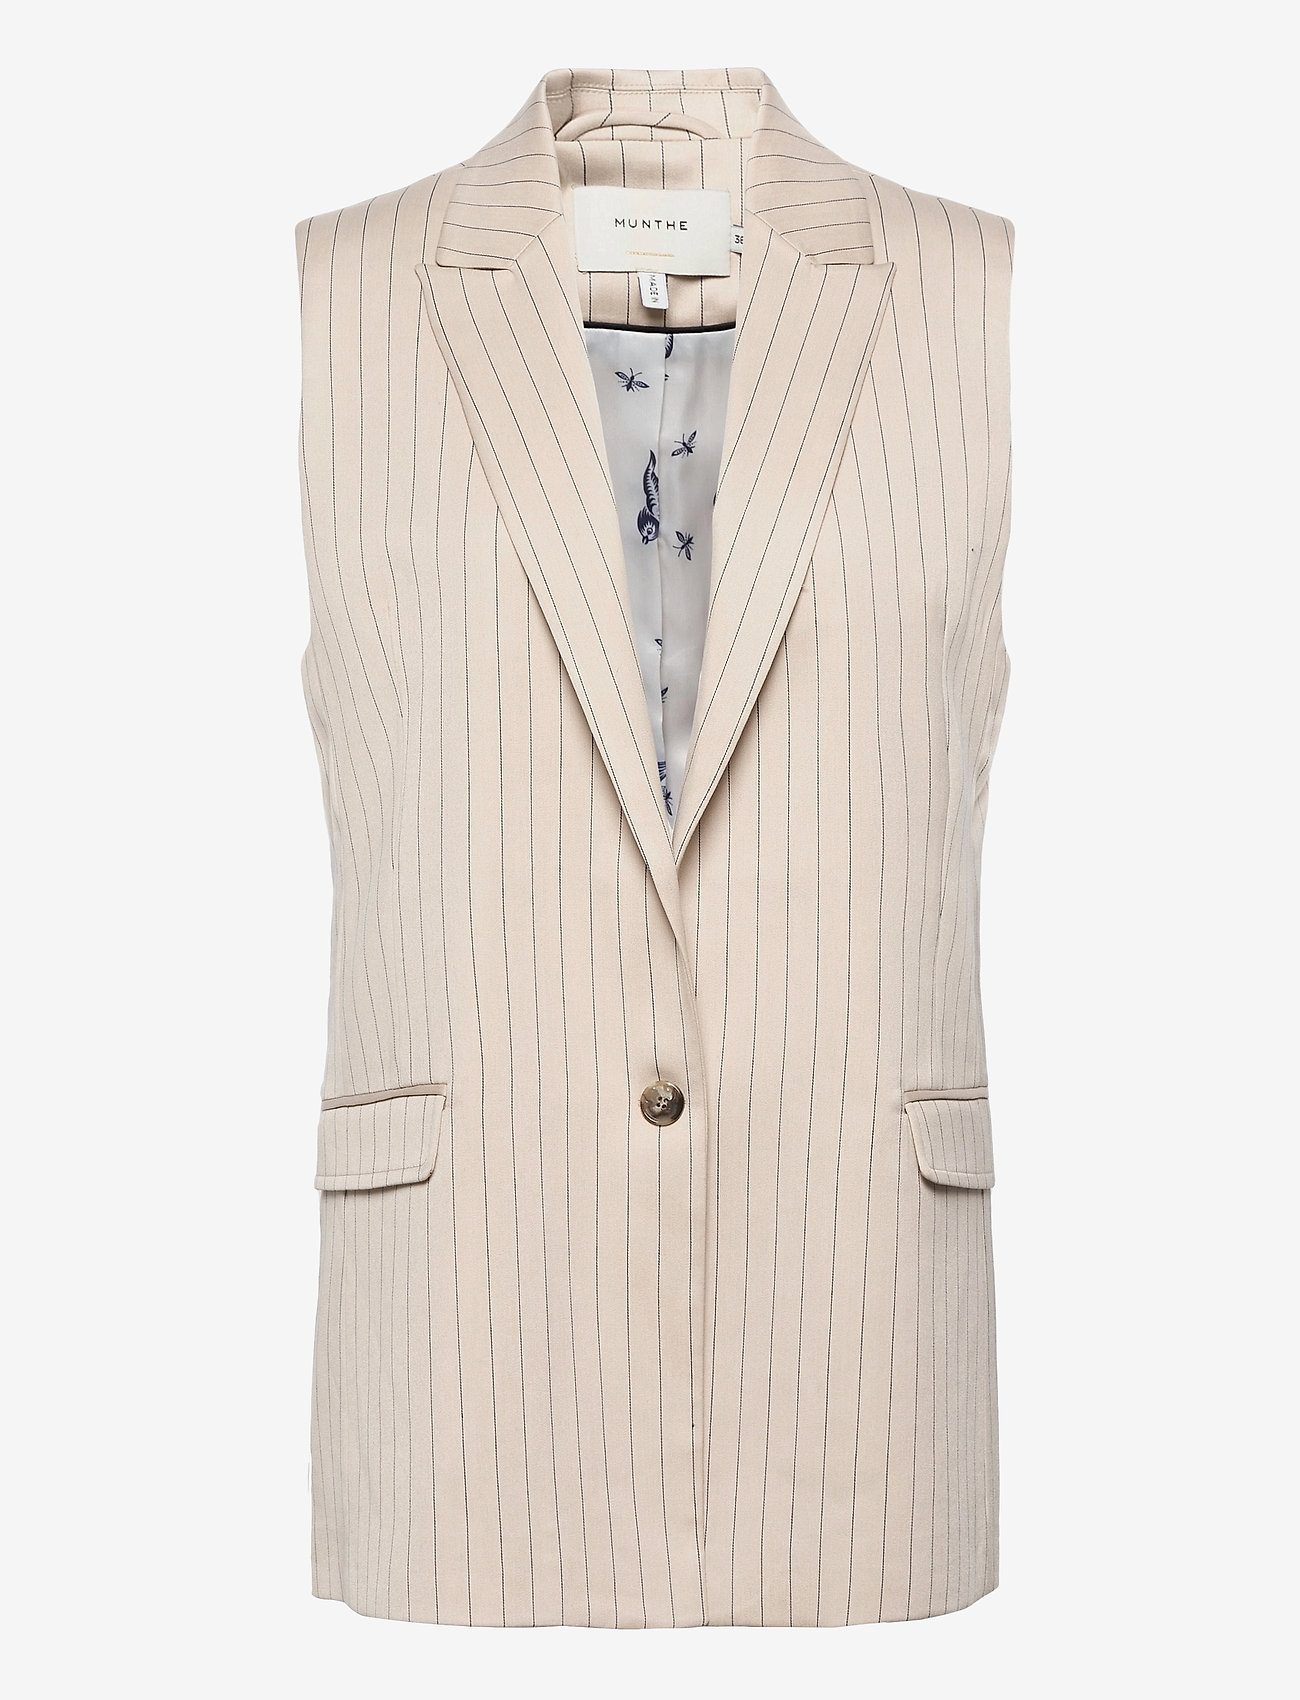 Munthe - TOADA - knitted vests - ivory - 0